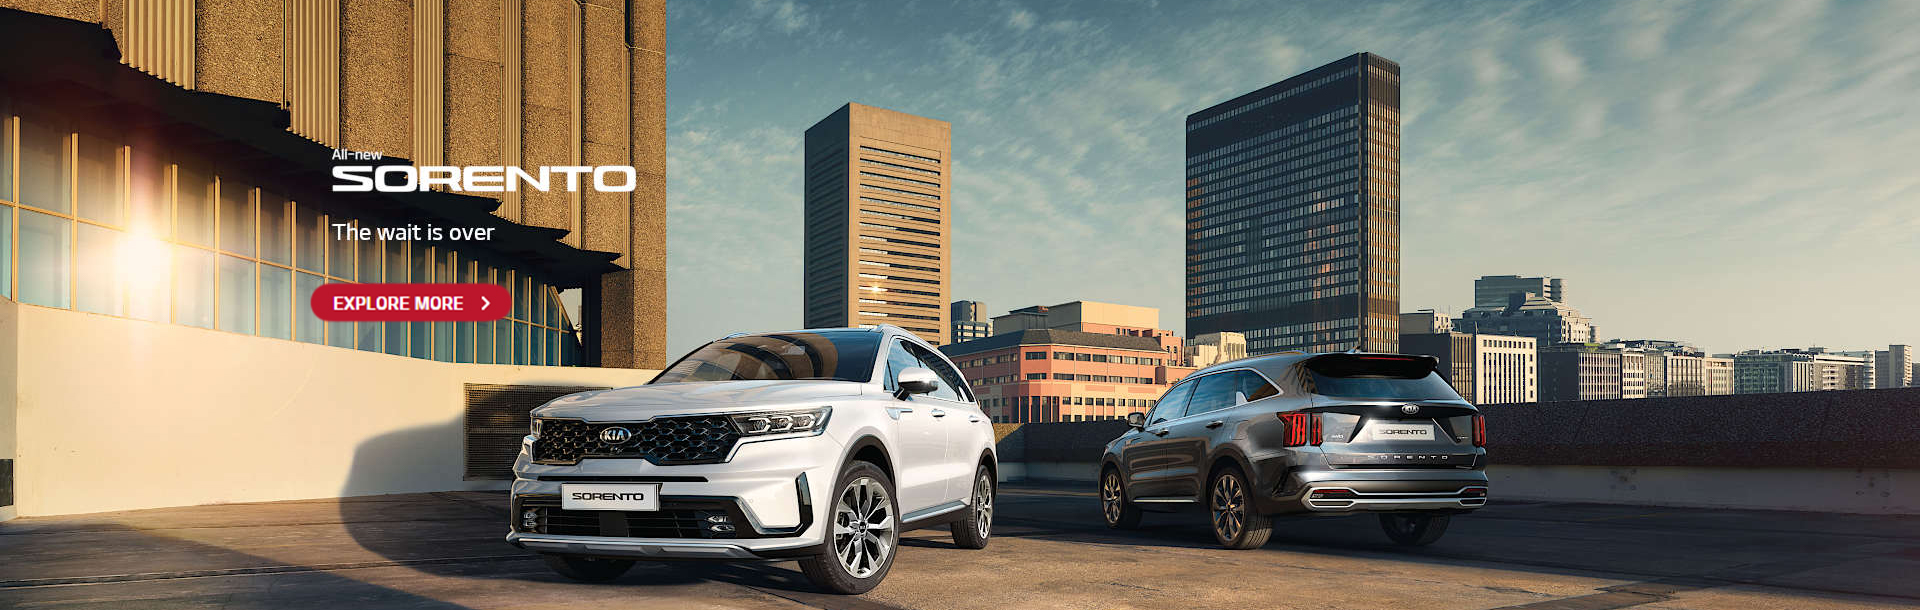 The all New Sorento. The wait is over. Explore more.